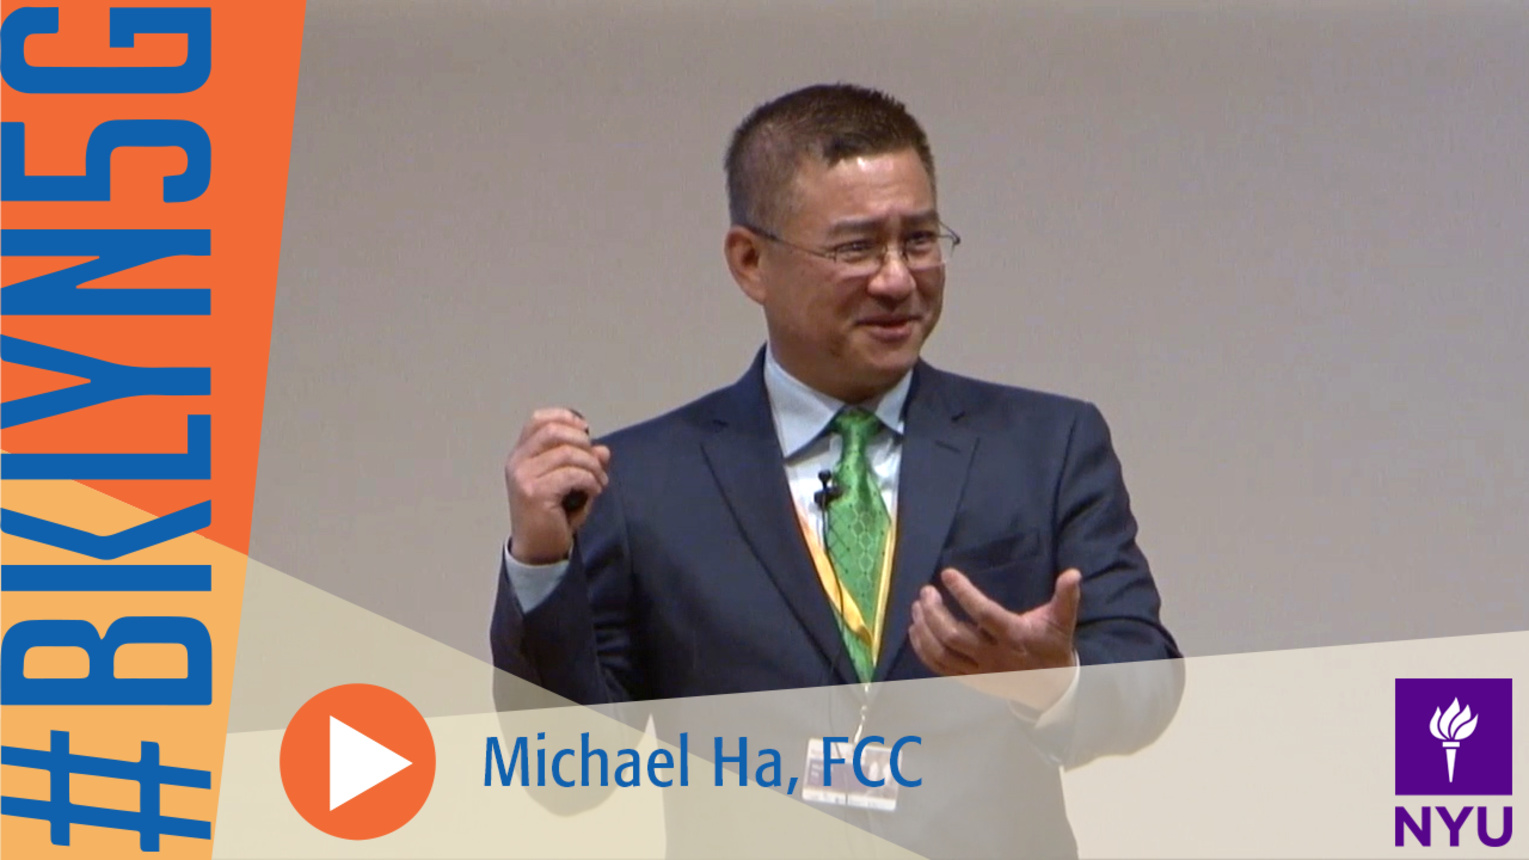 The Brooklyn 5G Summit: Michael Ha from the FCC